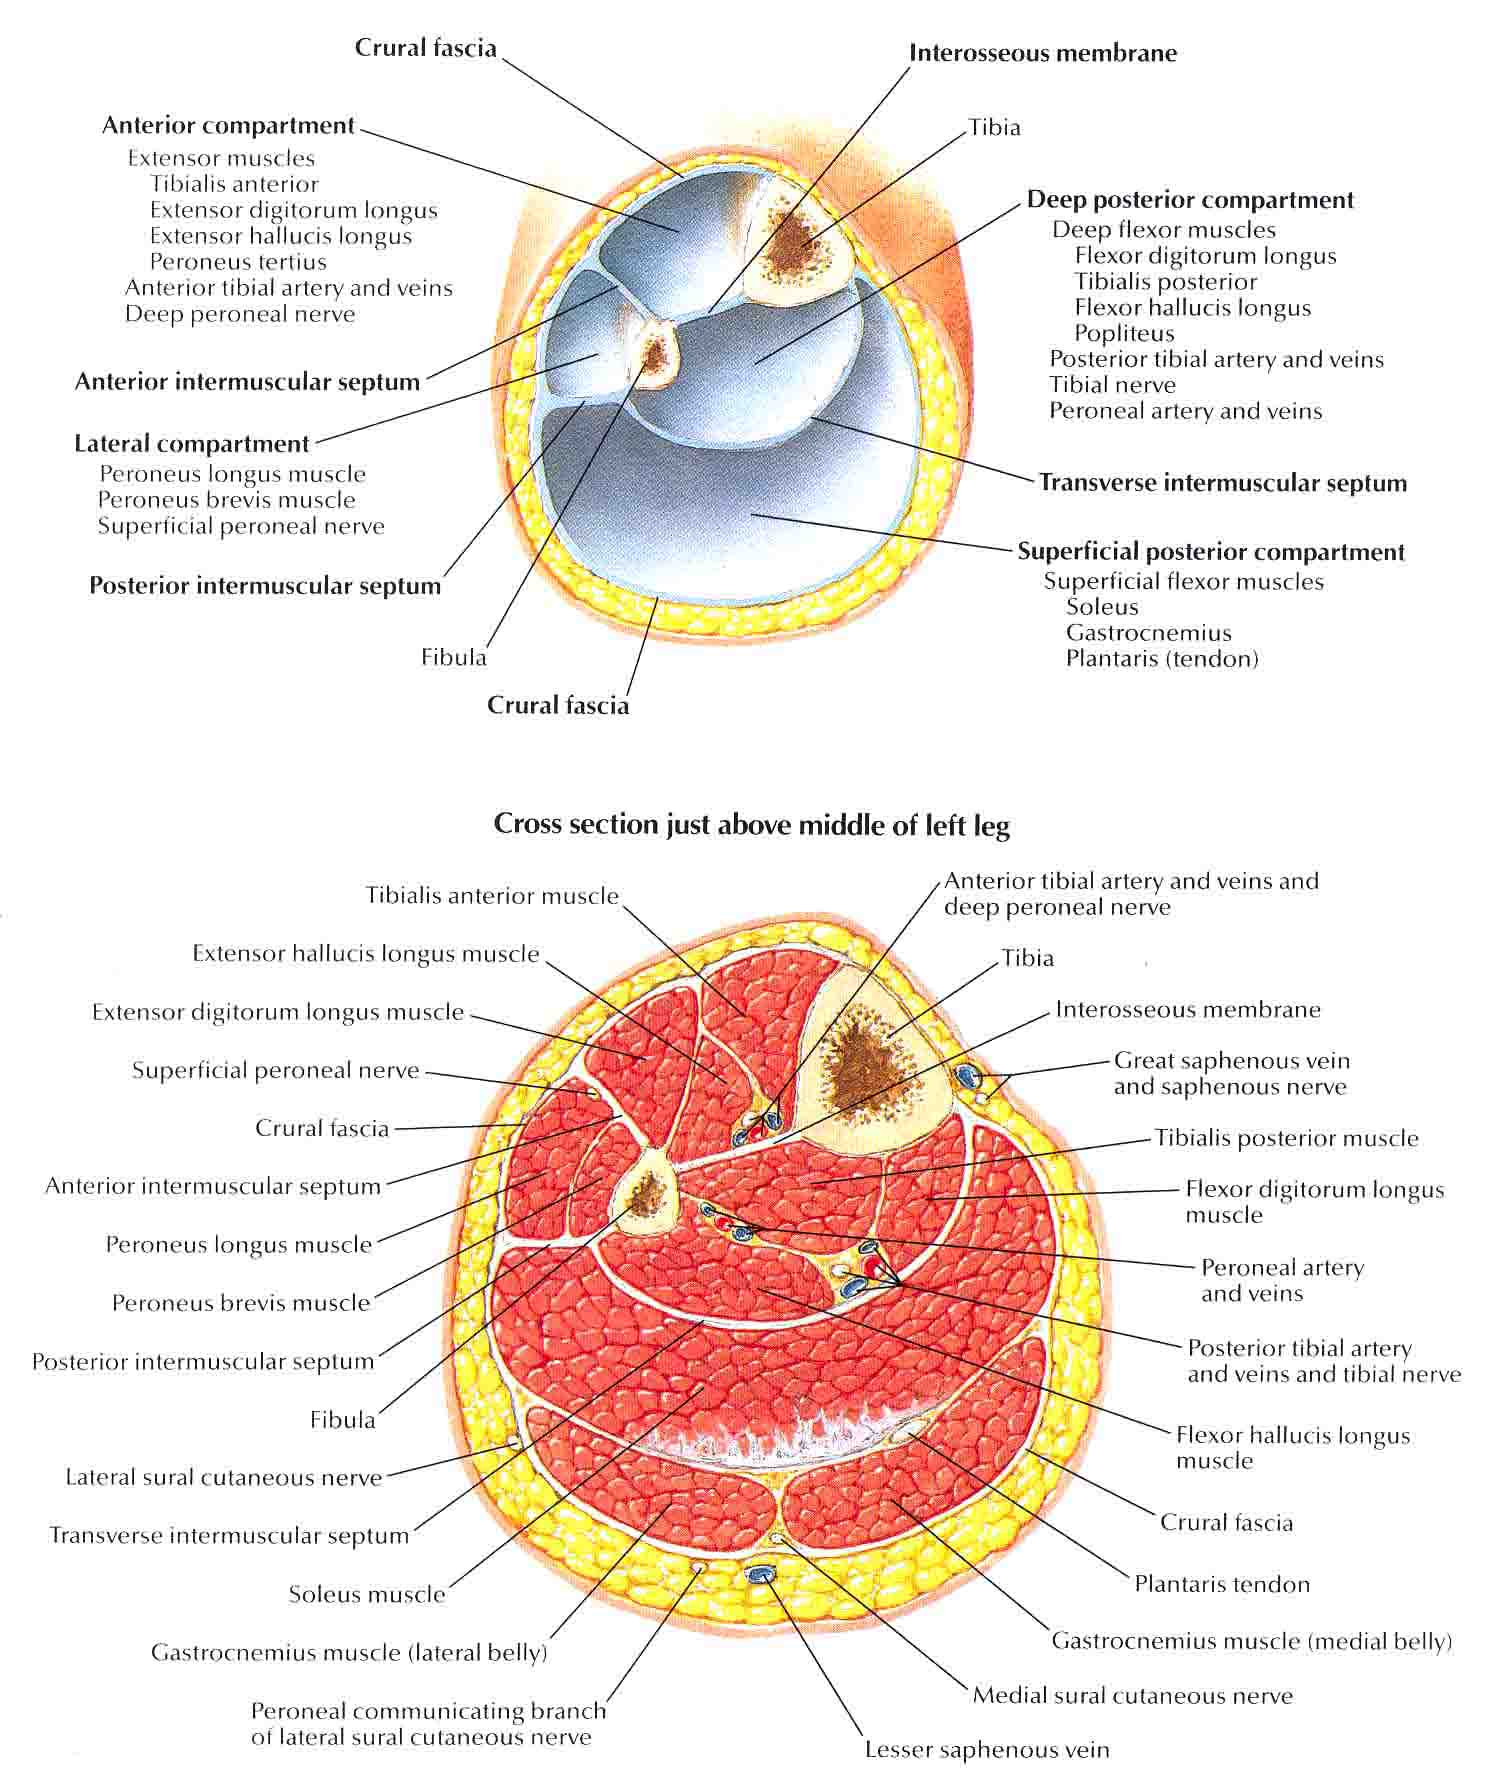 Leg Cross Section And Fascial Compartments